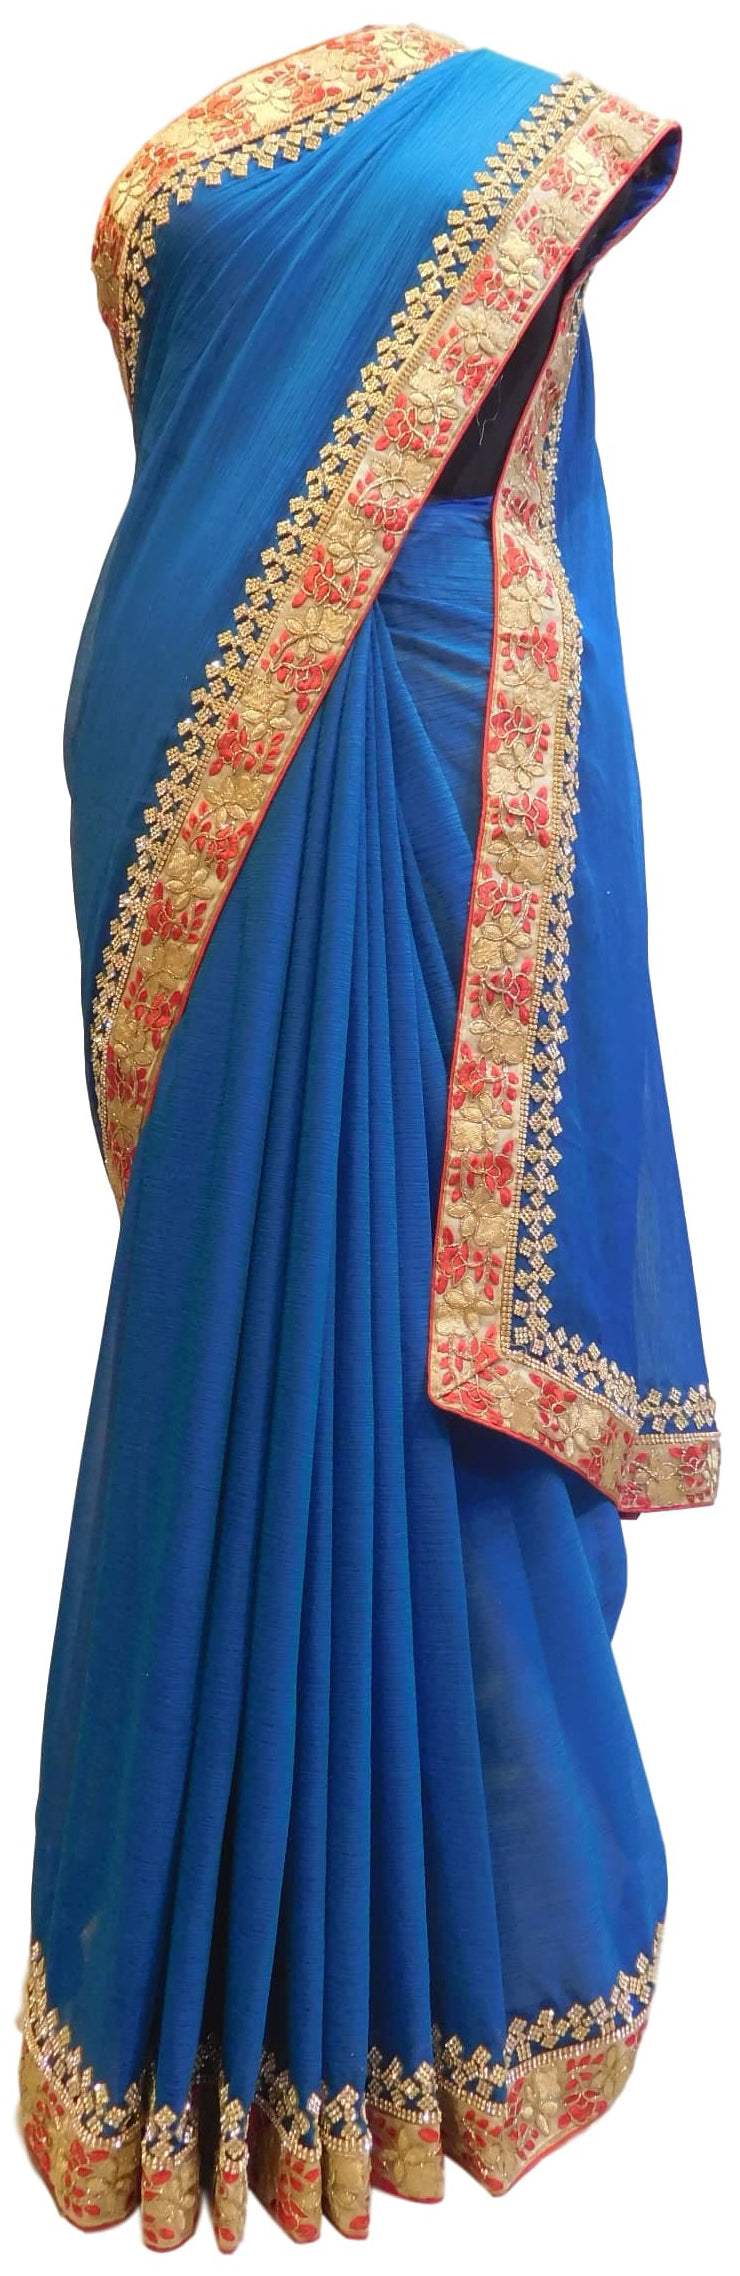 Blue Designer Chiffon Hand Embroidery Zari Stone Thread Work Saree Sari